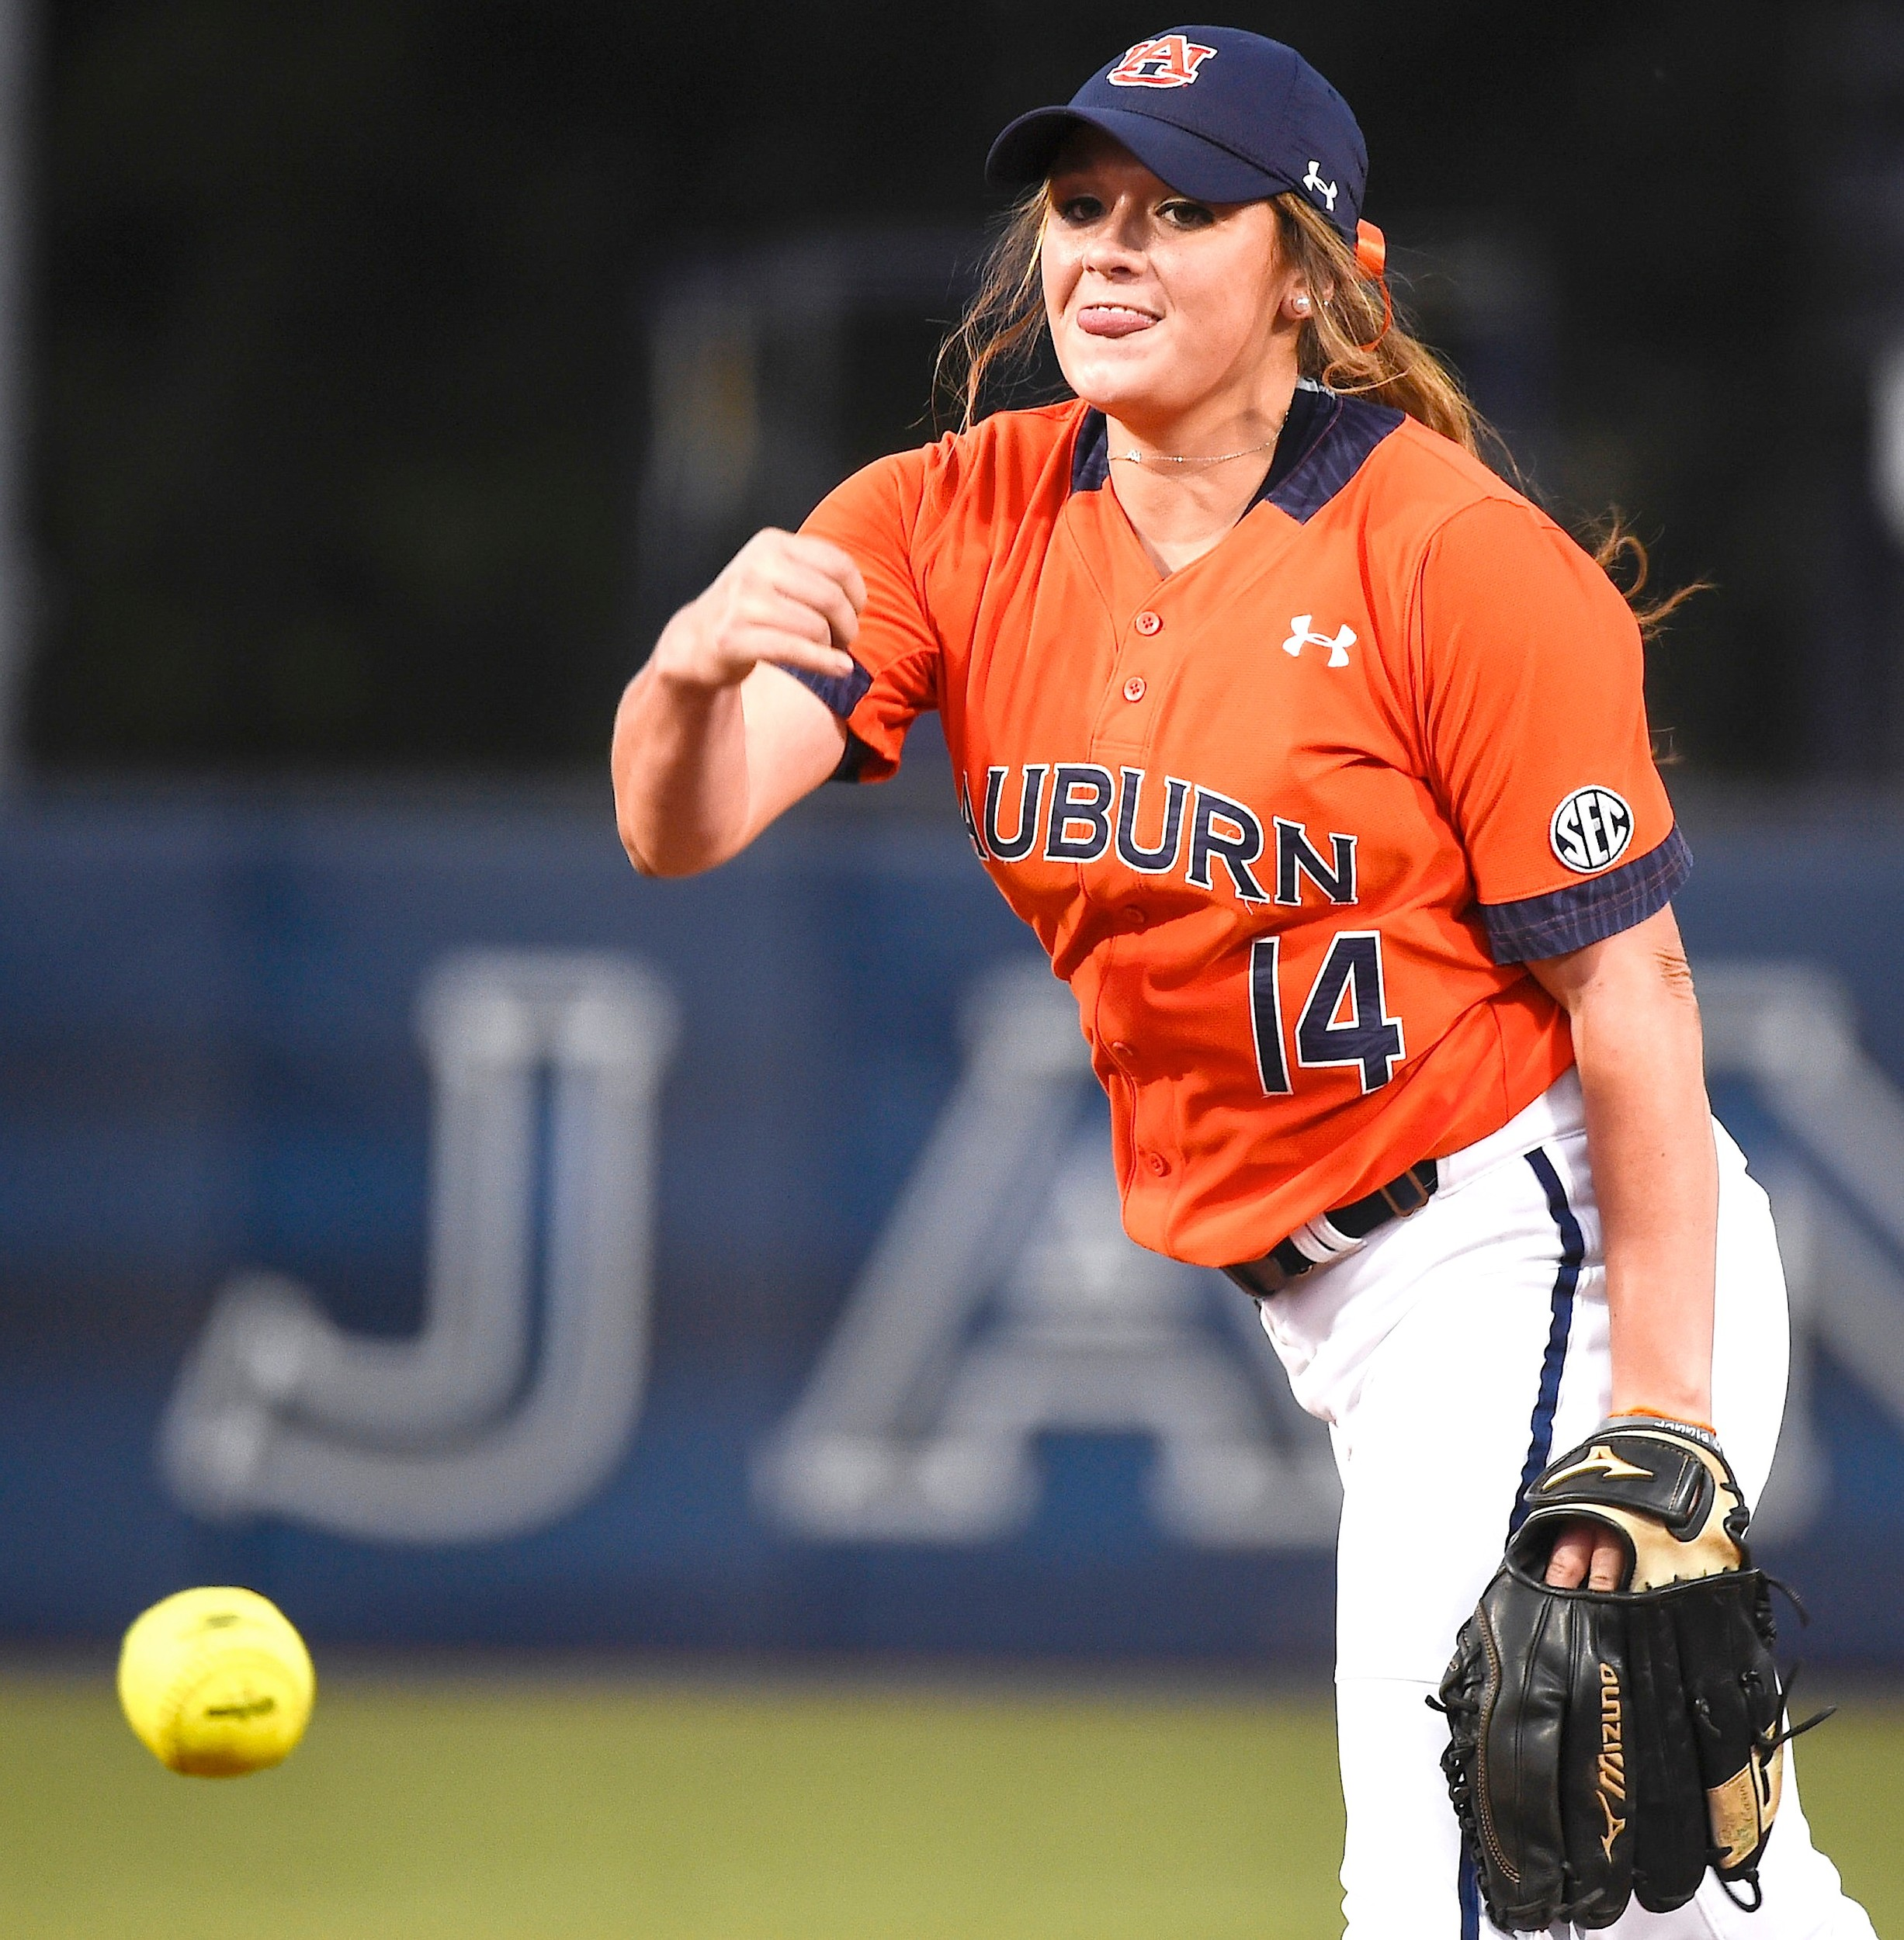 Ashlee Swindle (14) won two games in the circle for the Auburn Tigers in her freshman year. Swindle guided Curry to a pair of state championships before heading to Auburn.